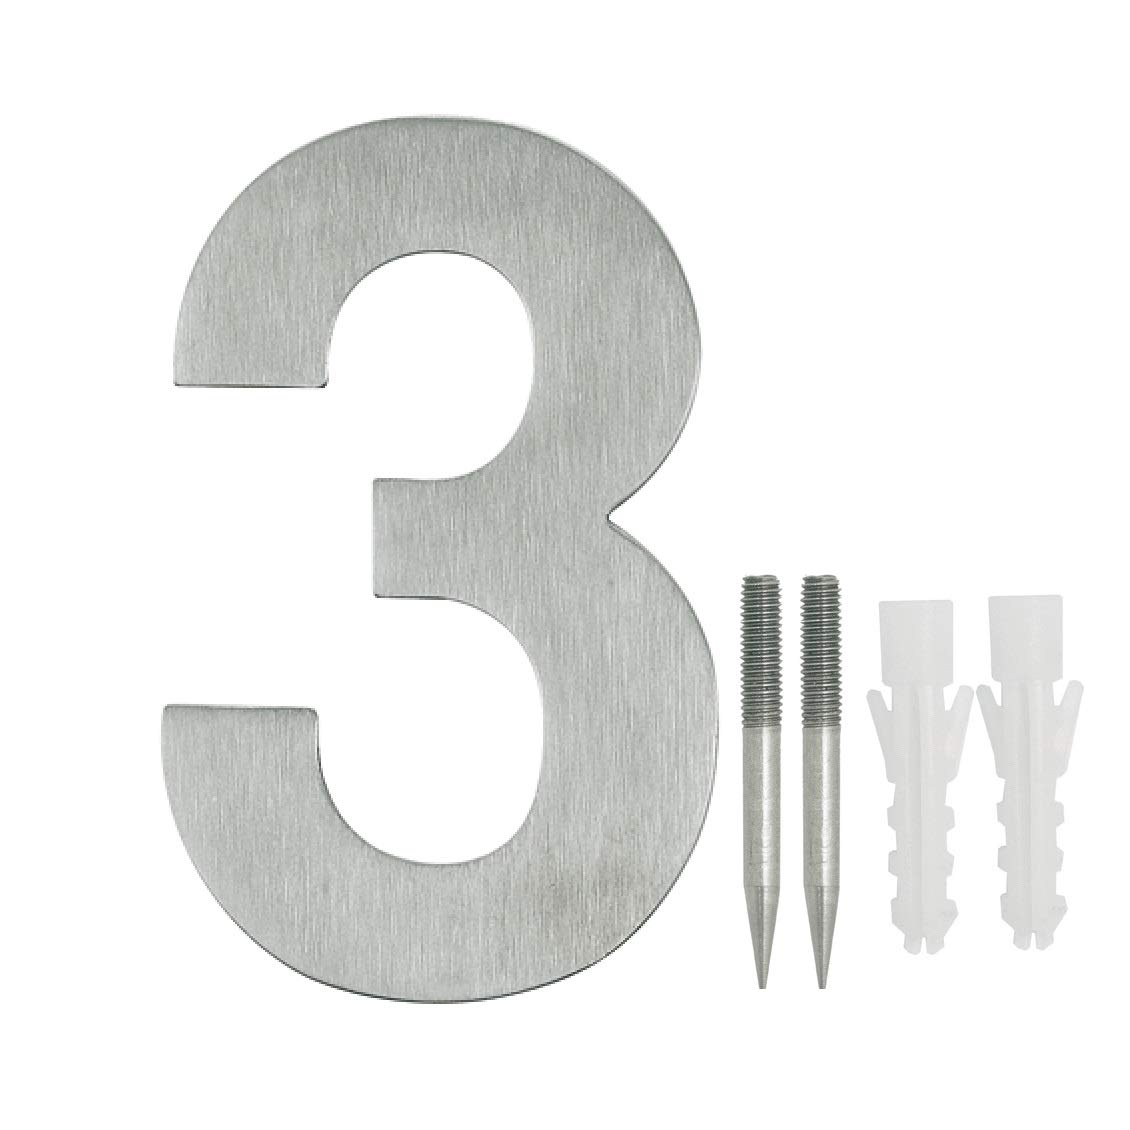 NUZAMAS Door Numbers Plaques 3, Stainless Steel Hotel House Address Plaque Digits Plate Signs Street Numbers, Wall Mounted, 10.8cm Width 15cm High, Installation Kit Included